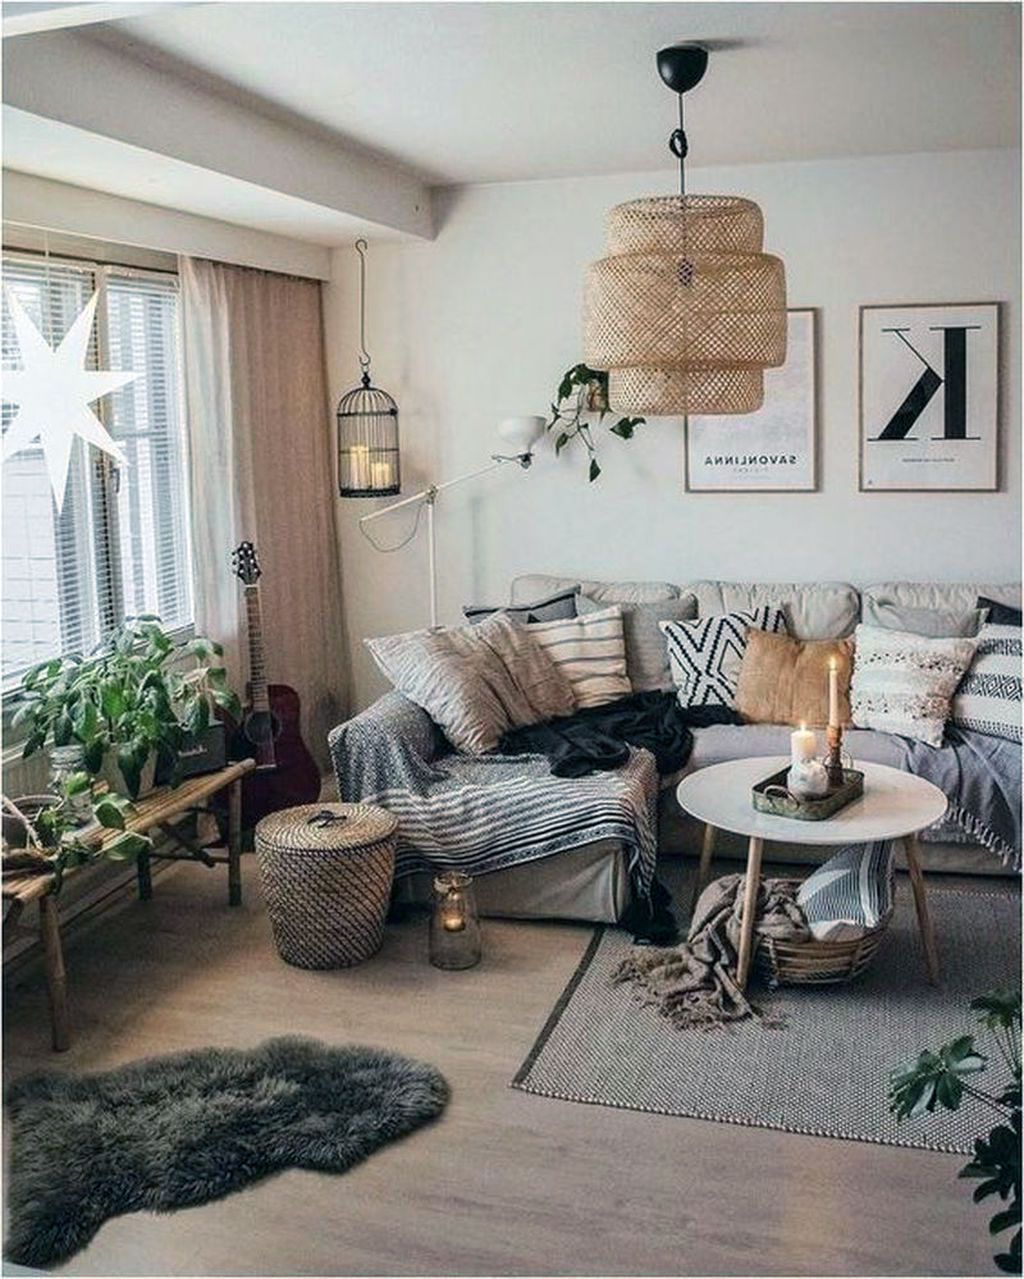 28 Marvelous Scandinavian Living Rooms With Boho Style Ideas#boho #ideas #living #marvelous #rooms #scandinavian #style